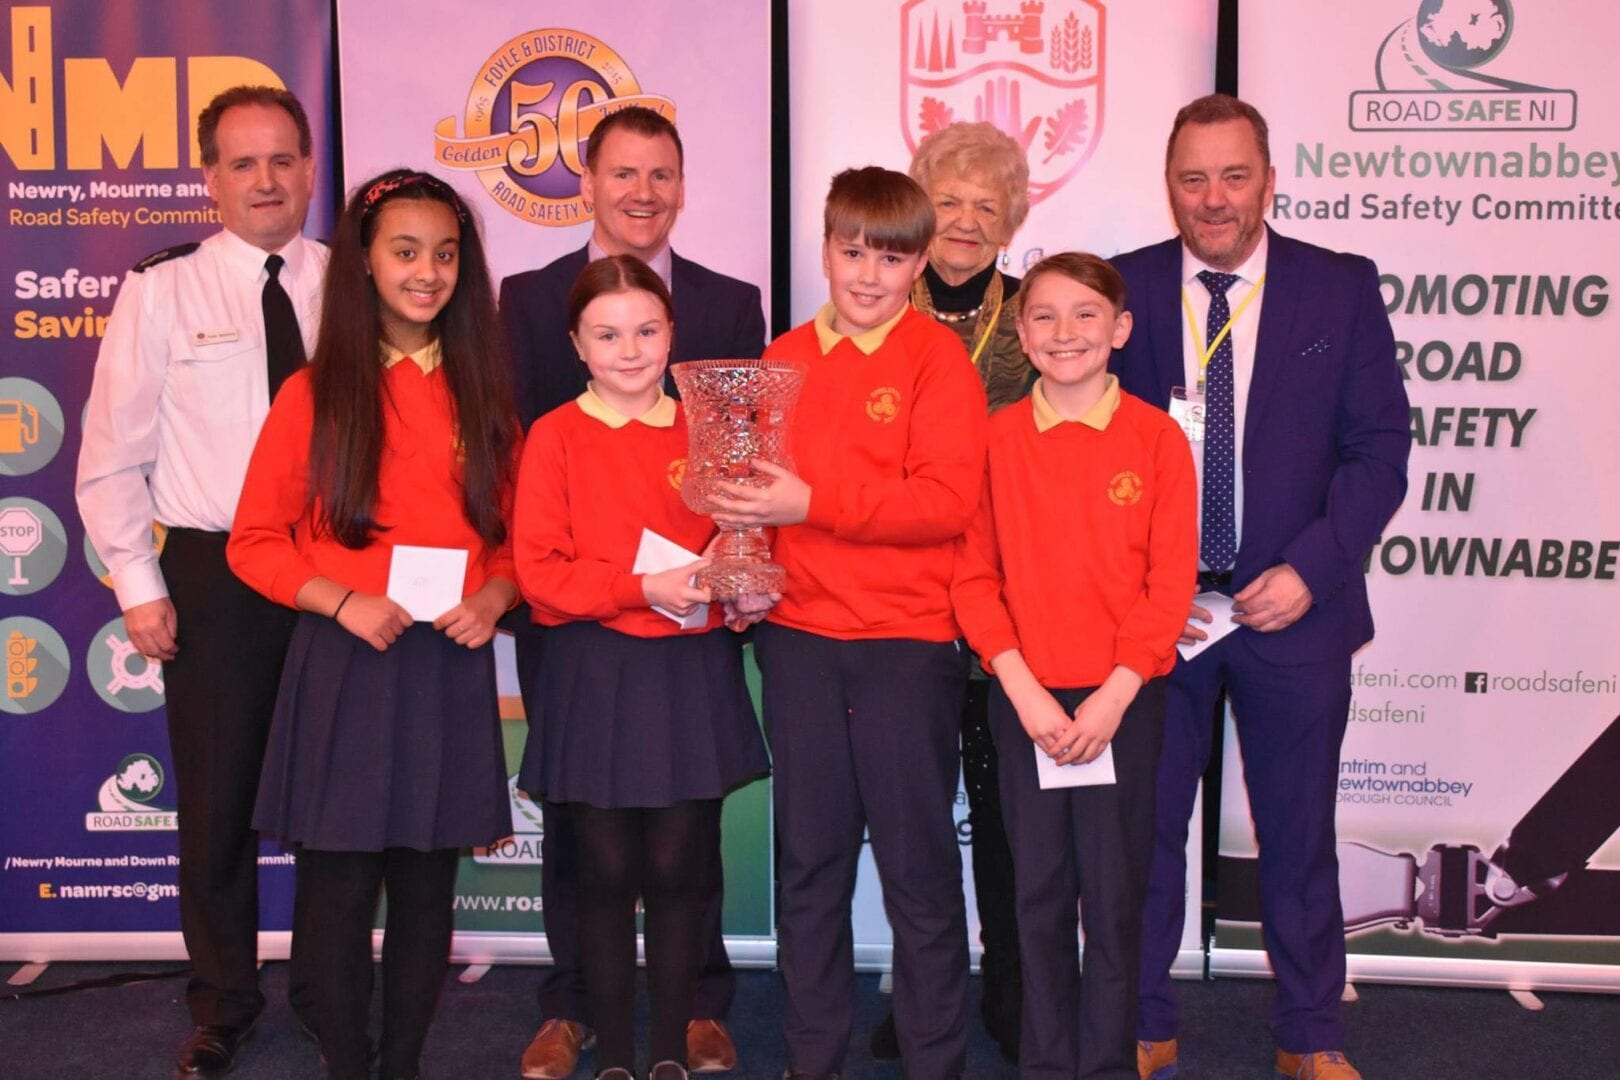 Steelstown win NI Primary School Road Safety